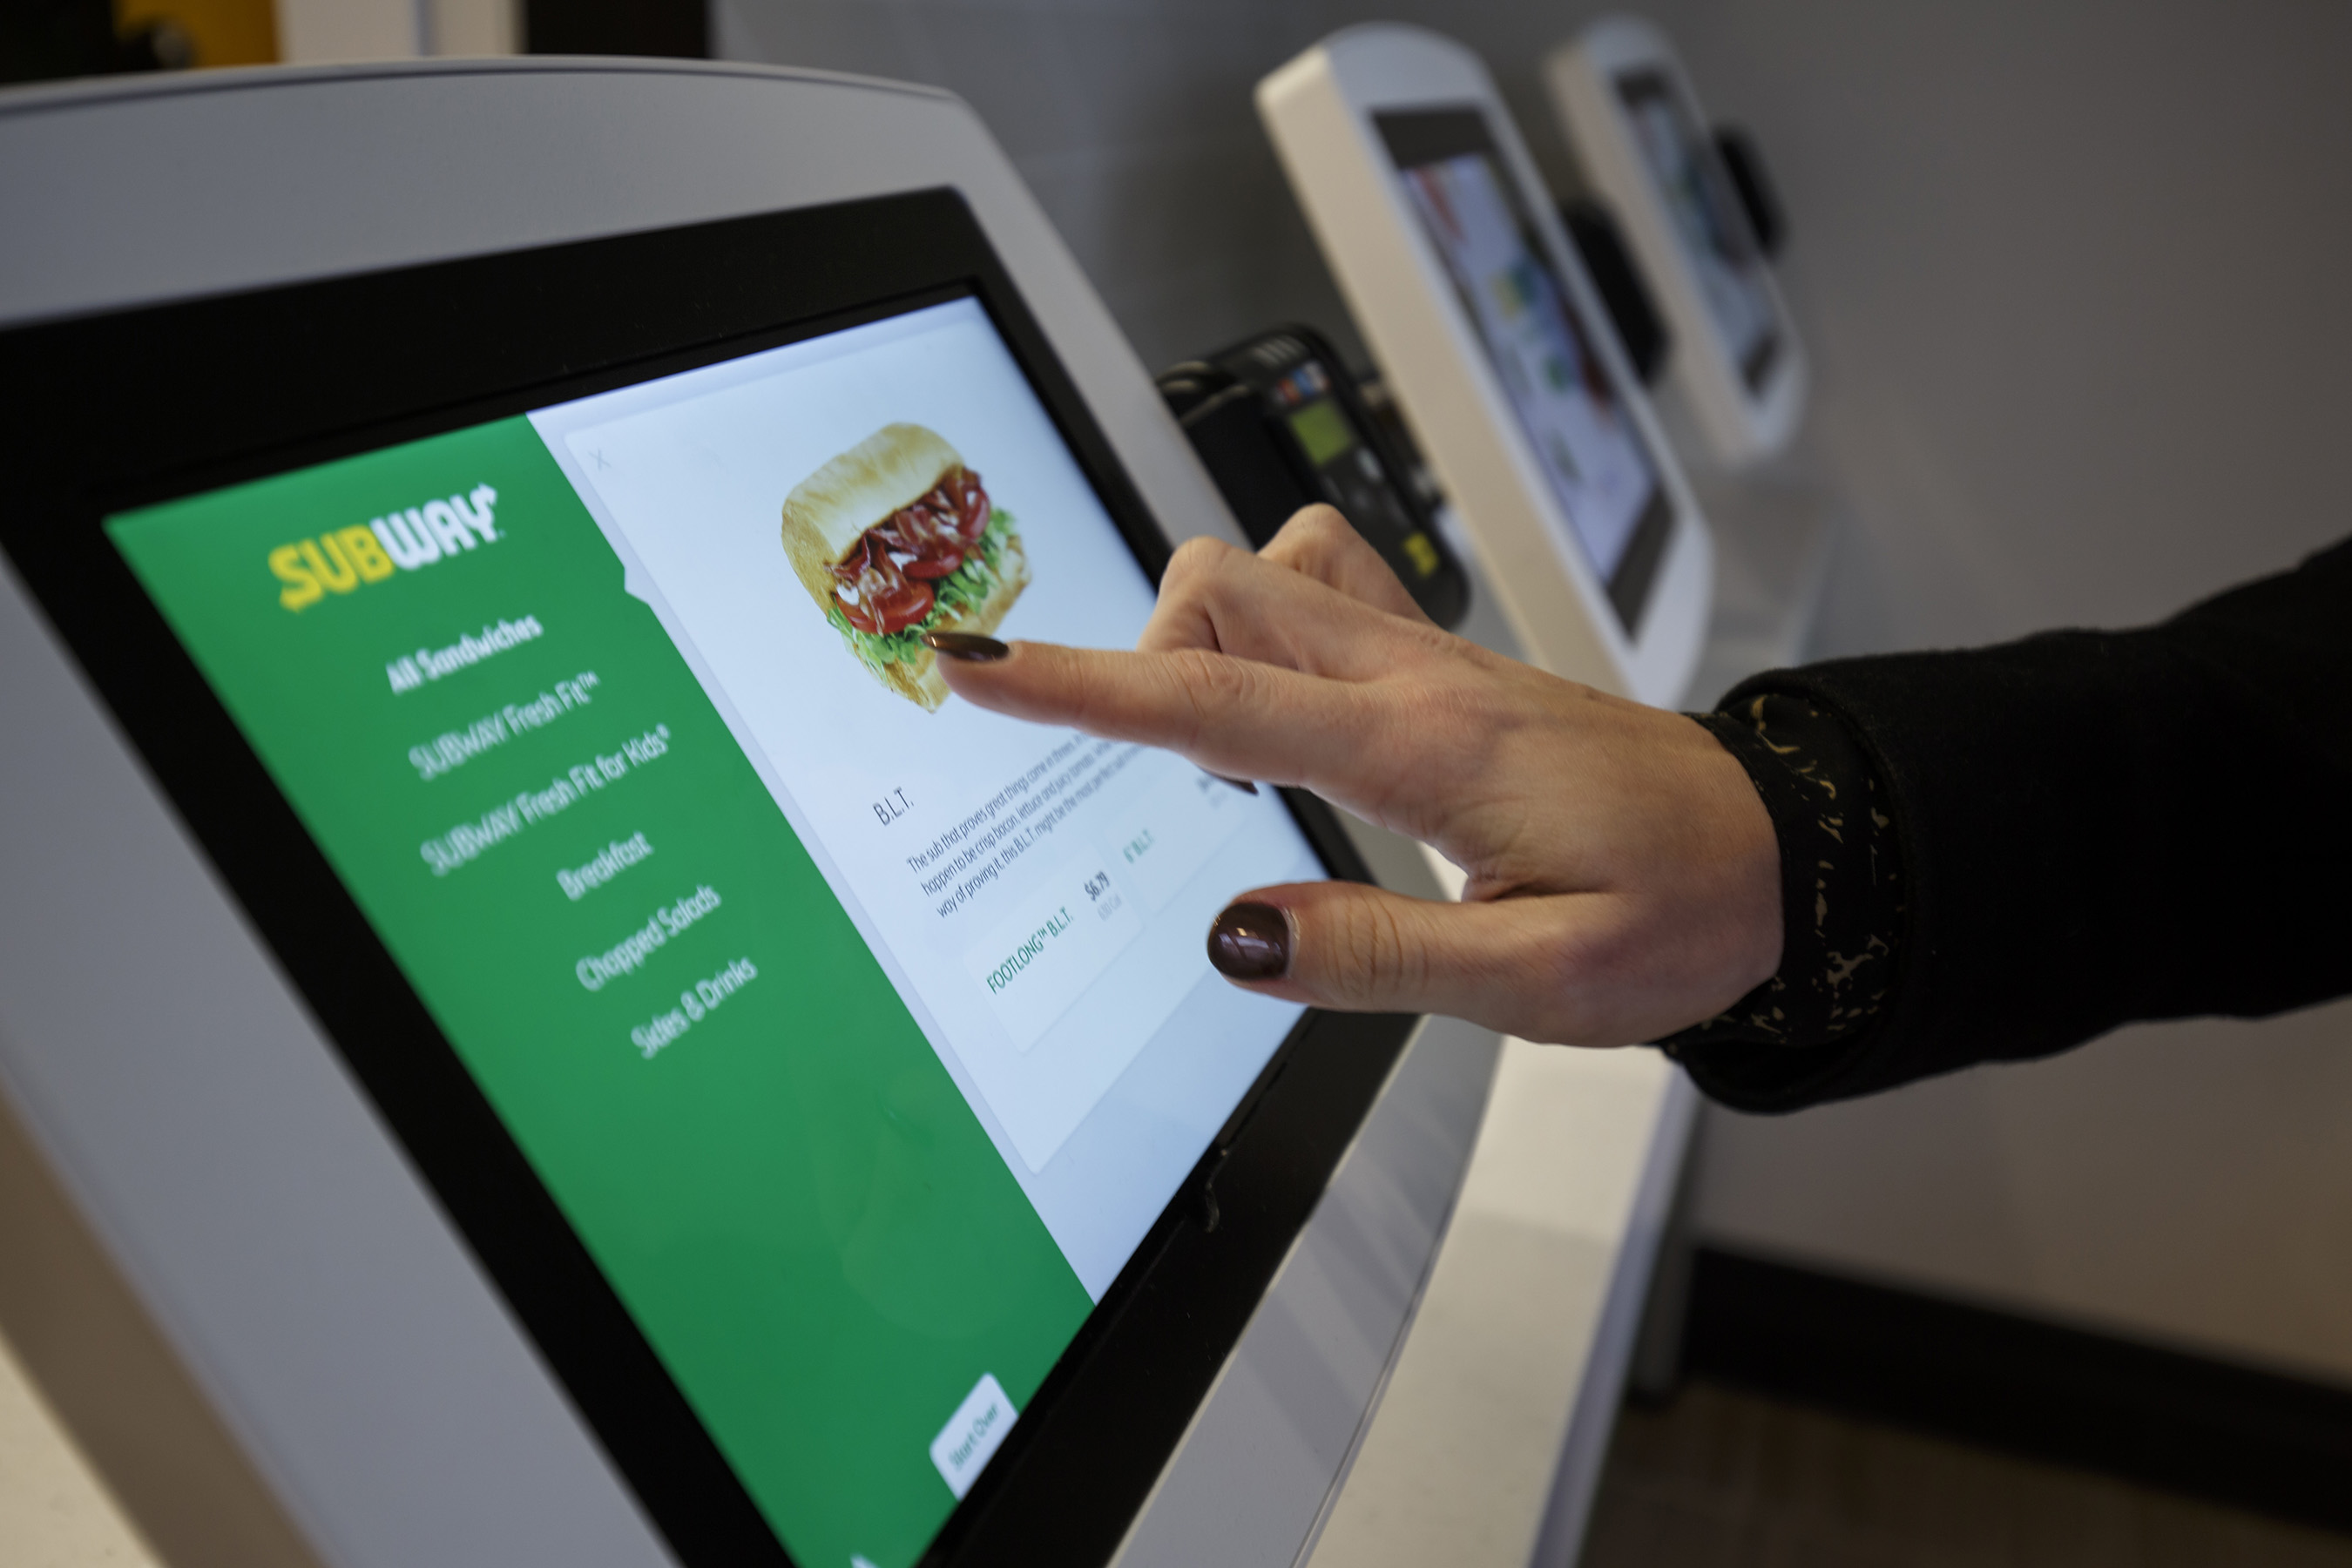 Subway Testing Self-Ordering Kiosks With Apple Pay as Payment Option